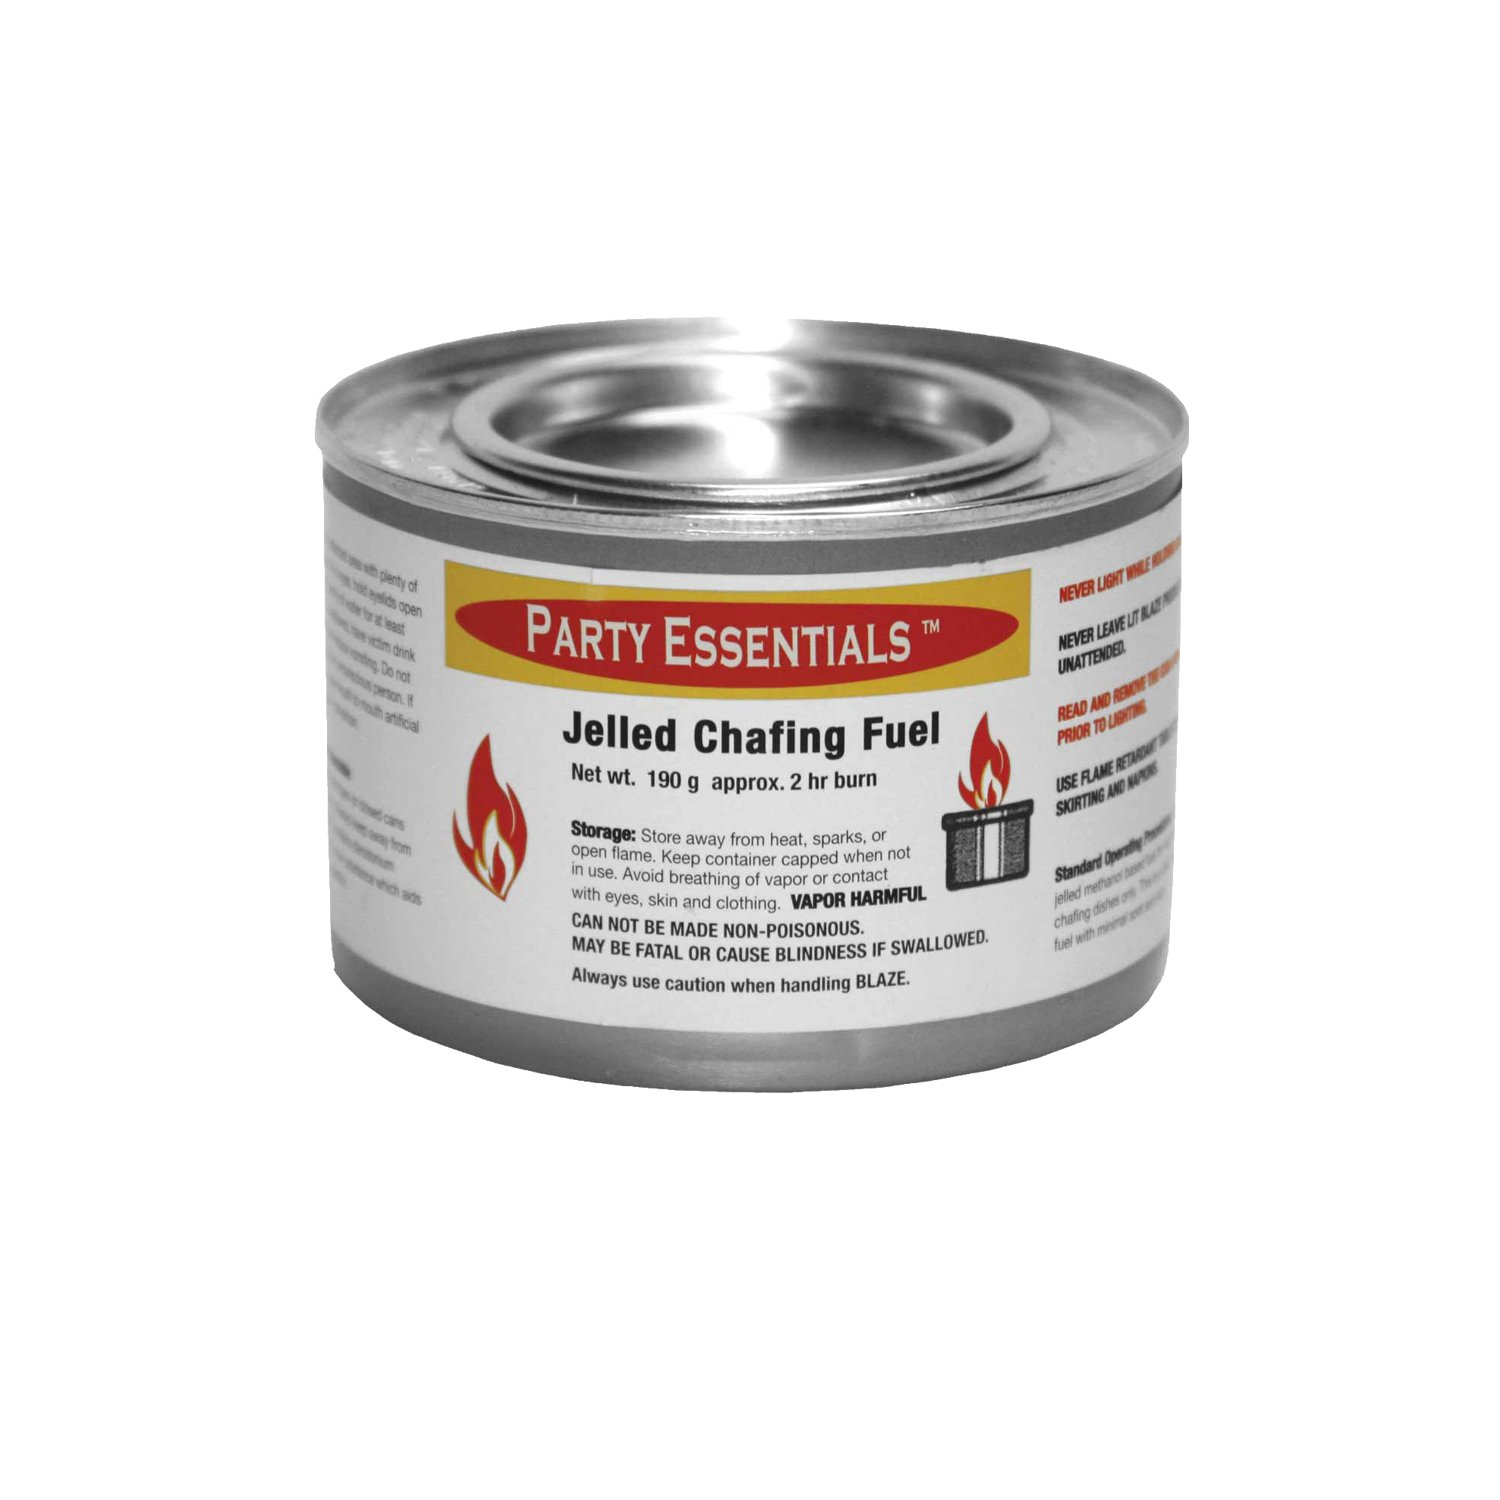 Party Essentials Chafing Dish Jelled Methanol Warming Fuel, 6-Pack by Party Essentials (Image #2)